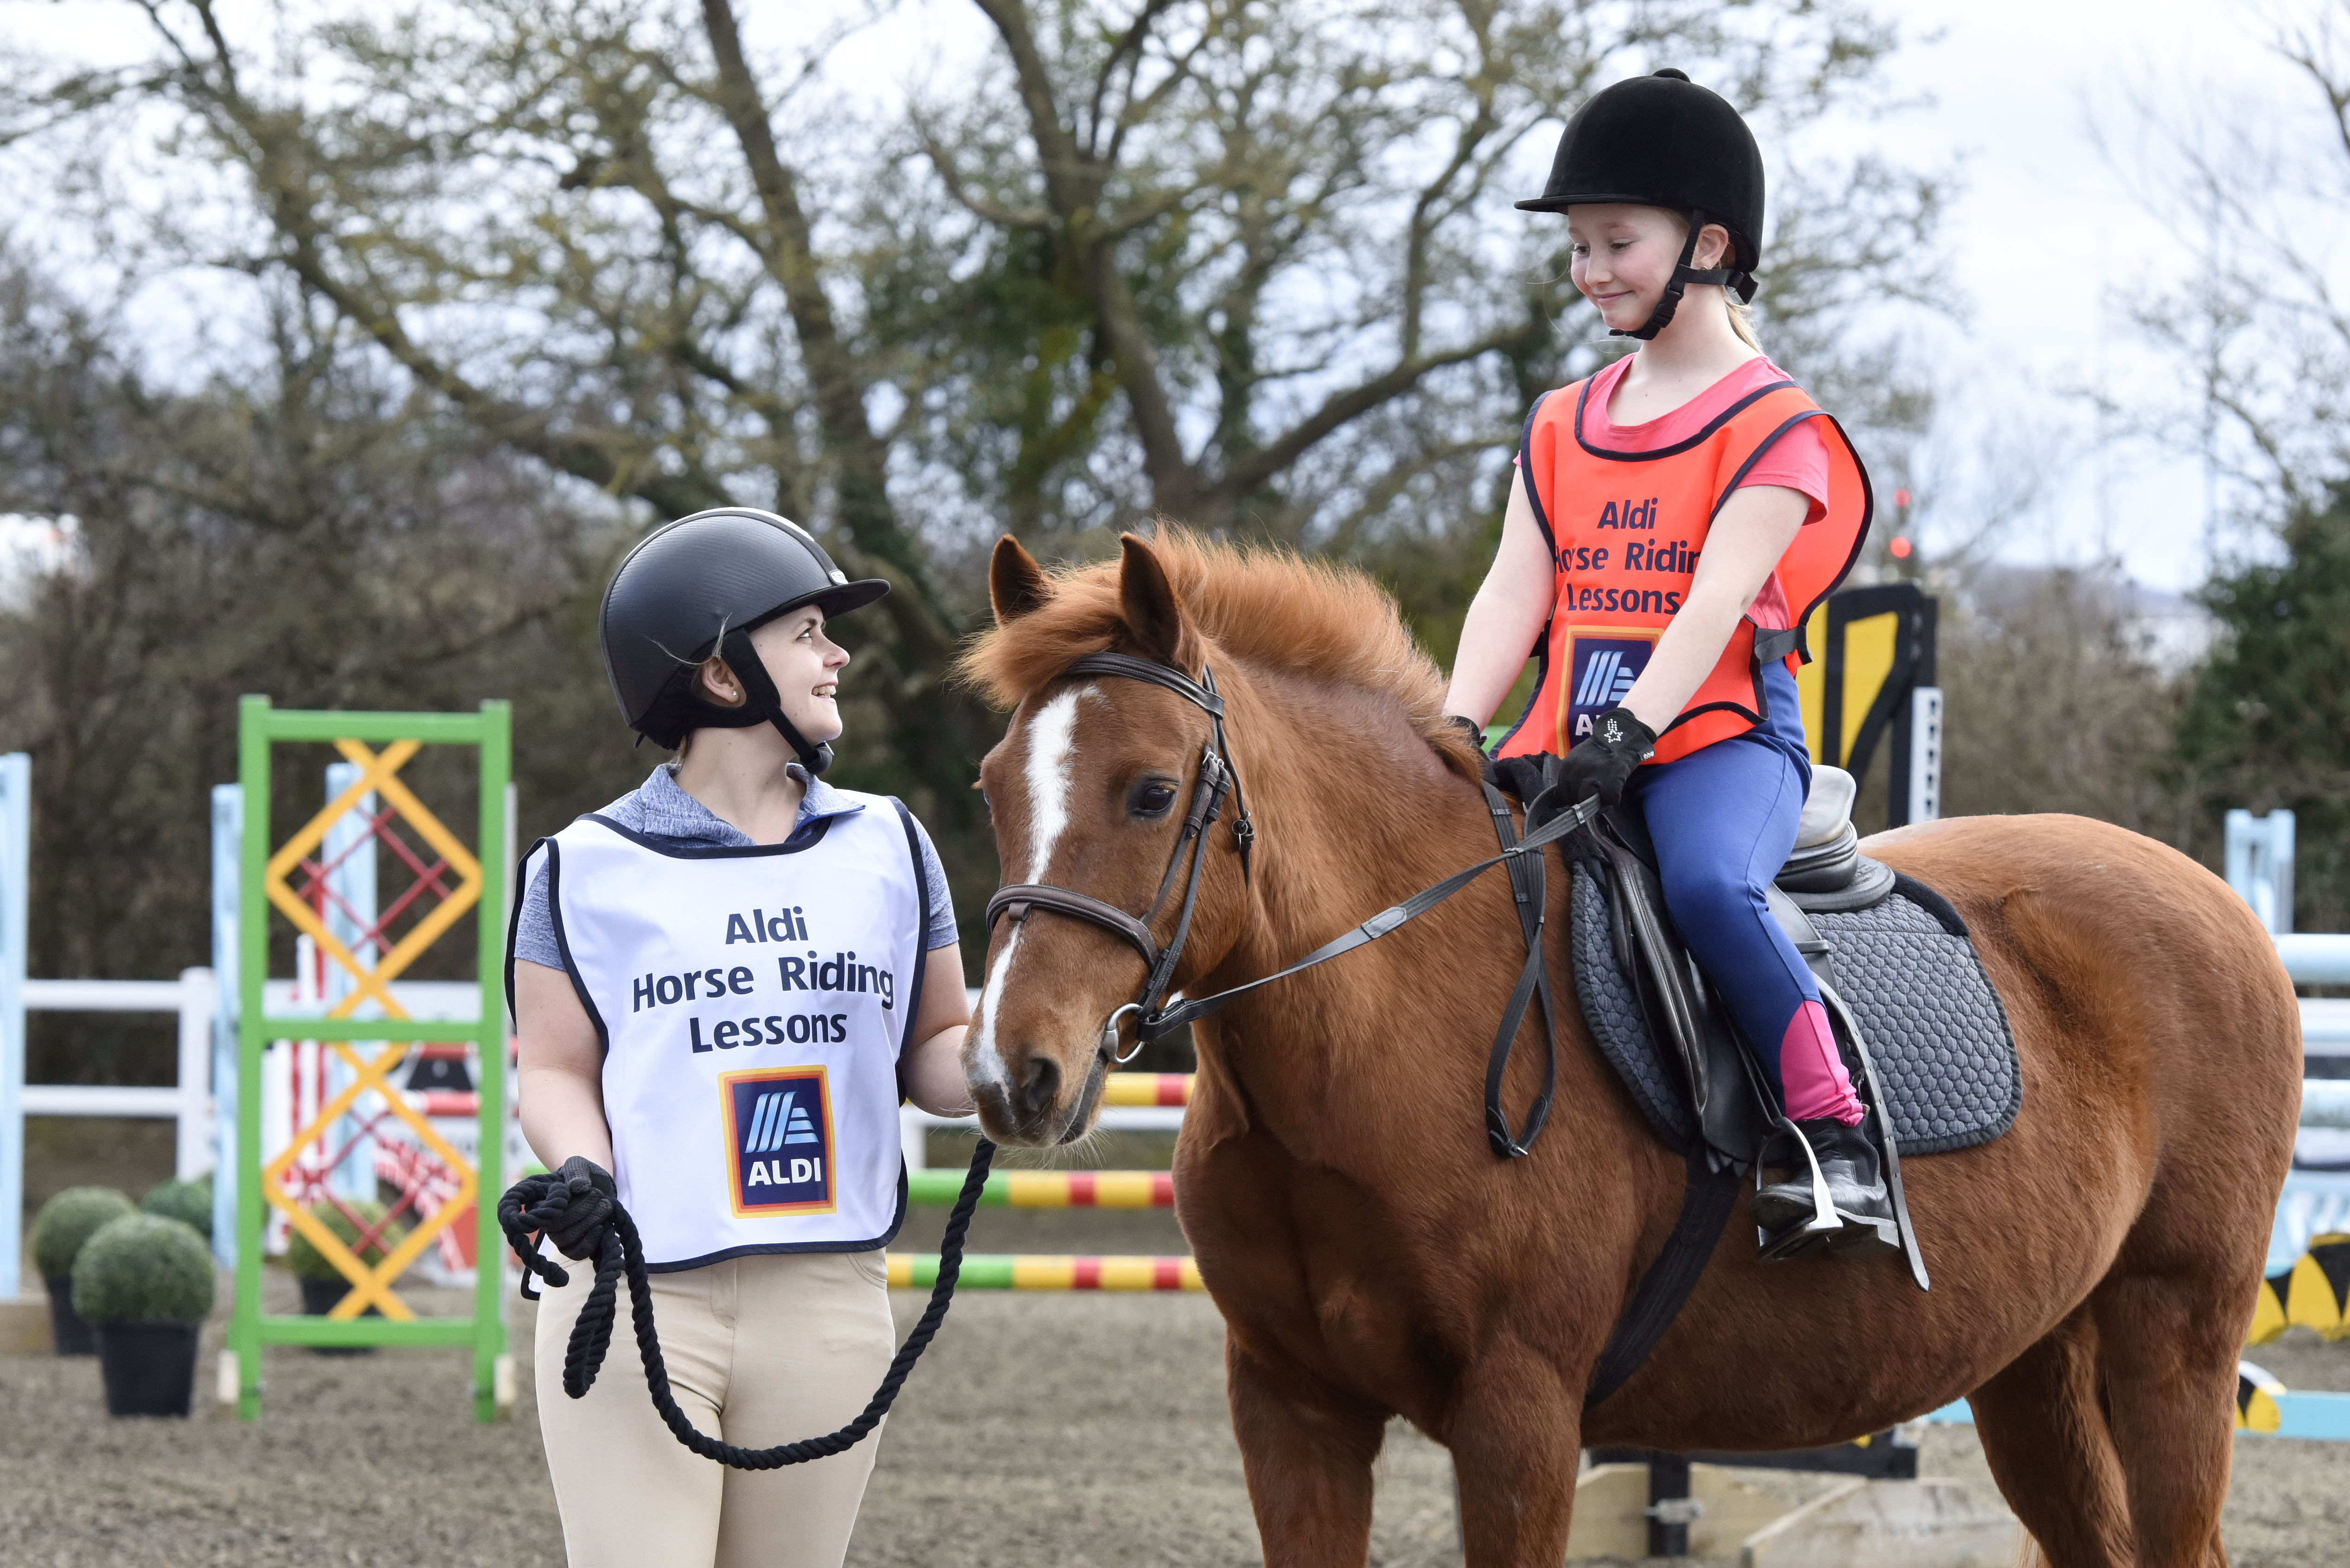 Aldi Launches Specialbuys Horse Riding Lessons Alongside